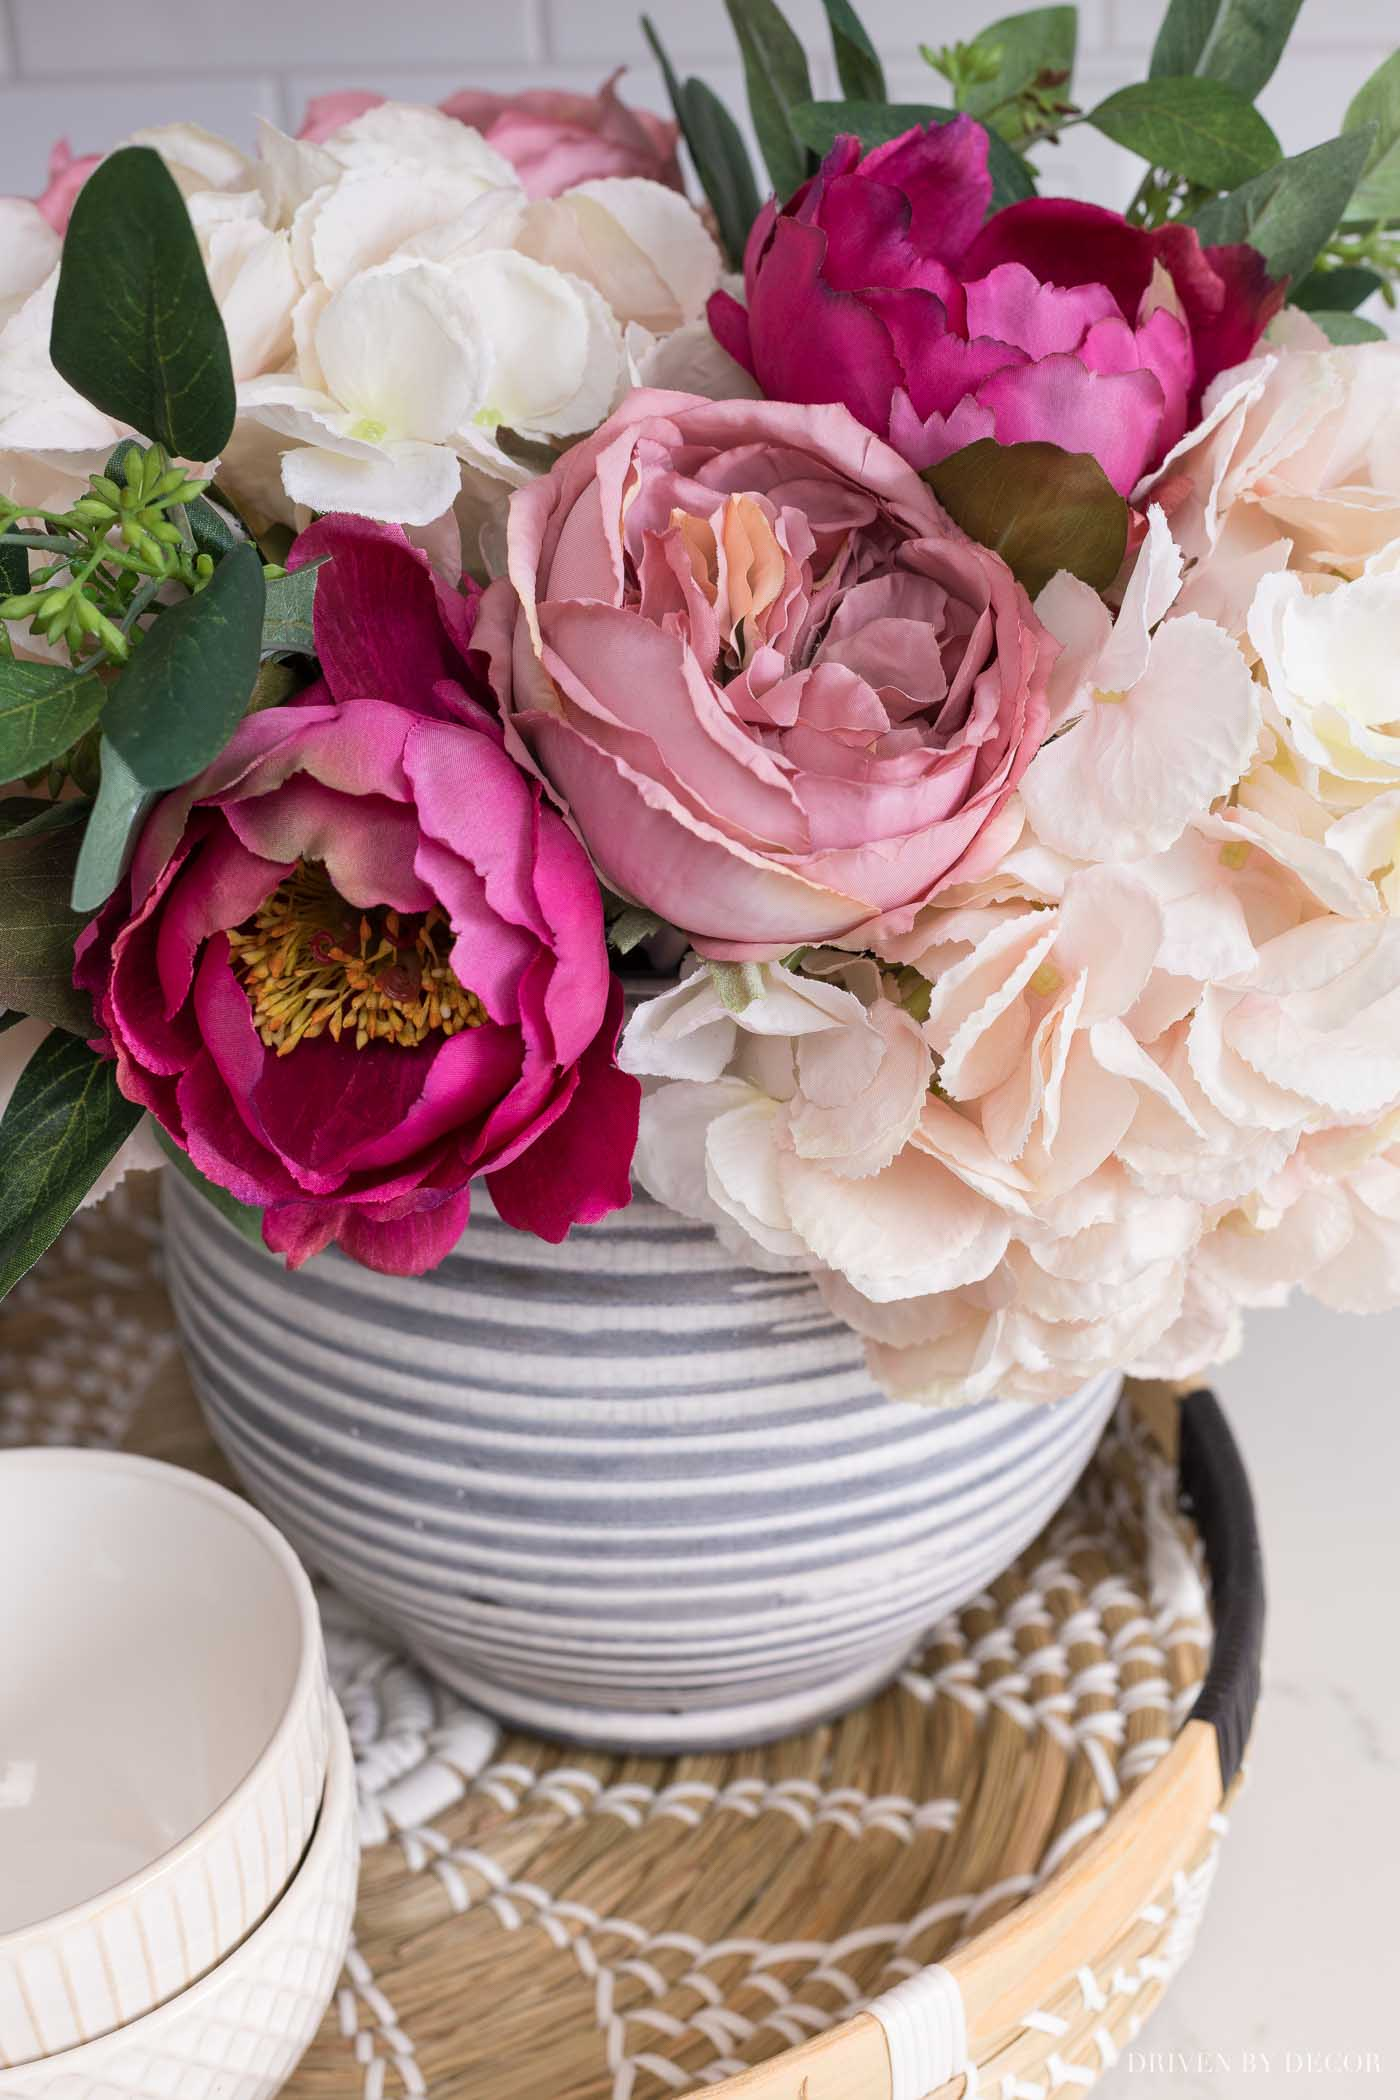 The prettiest combination of fall faux flowers!